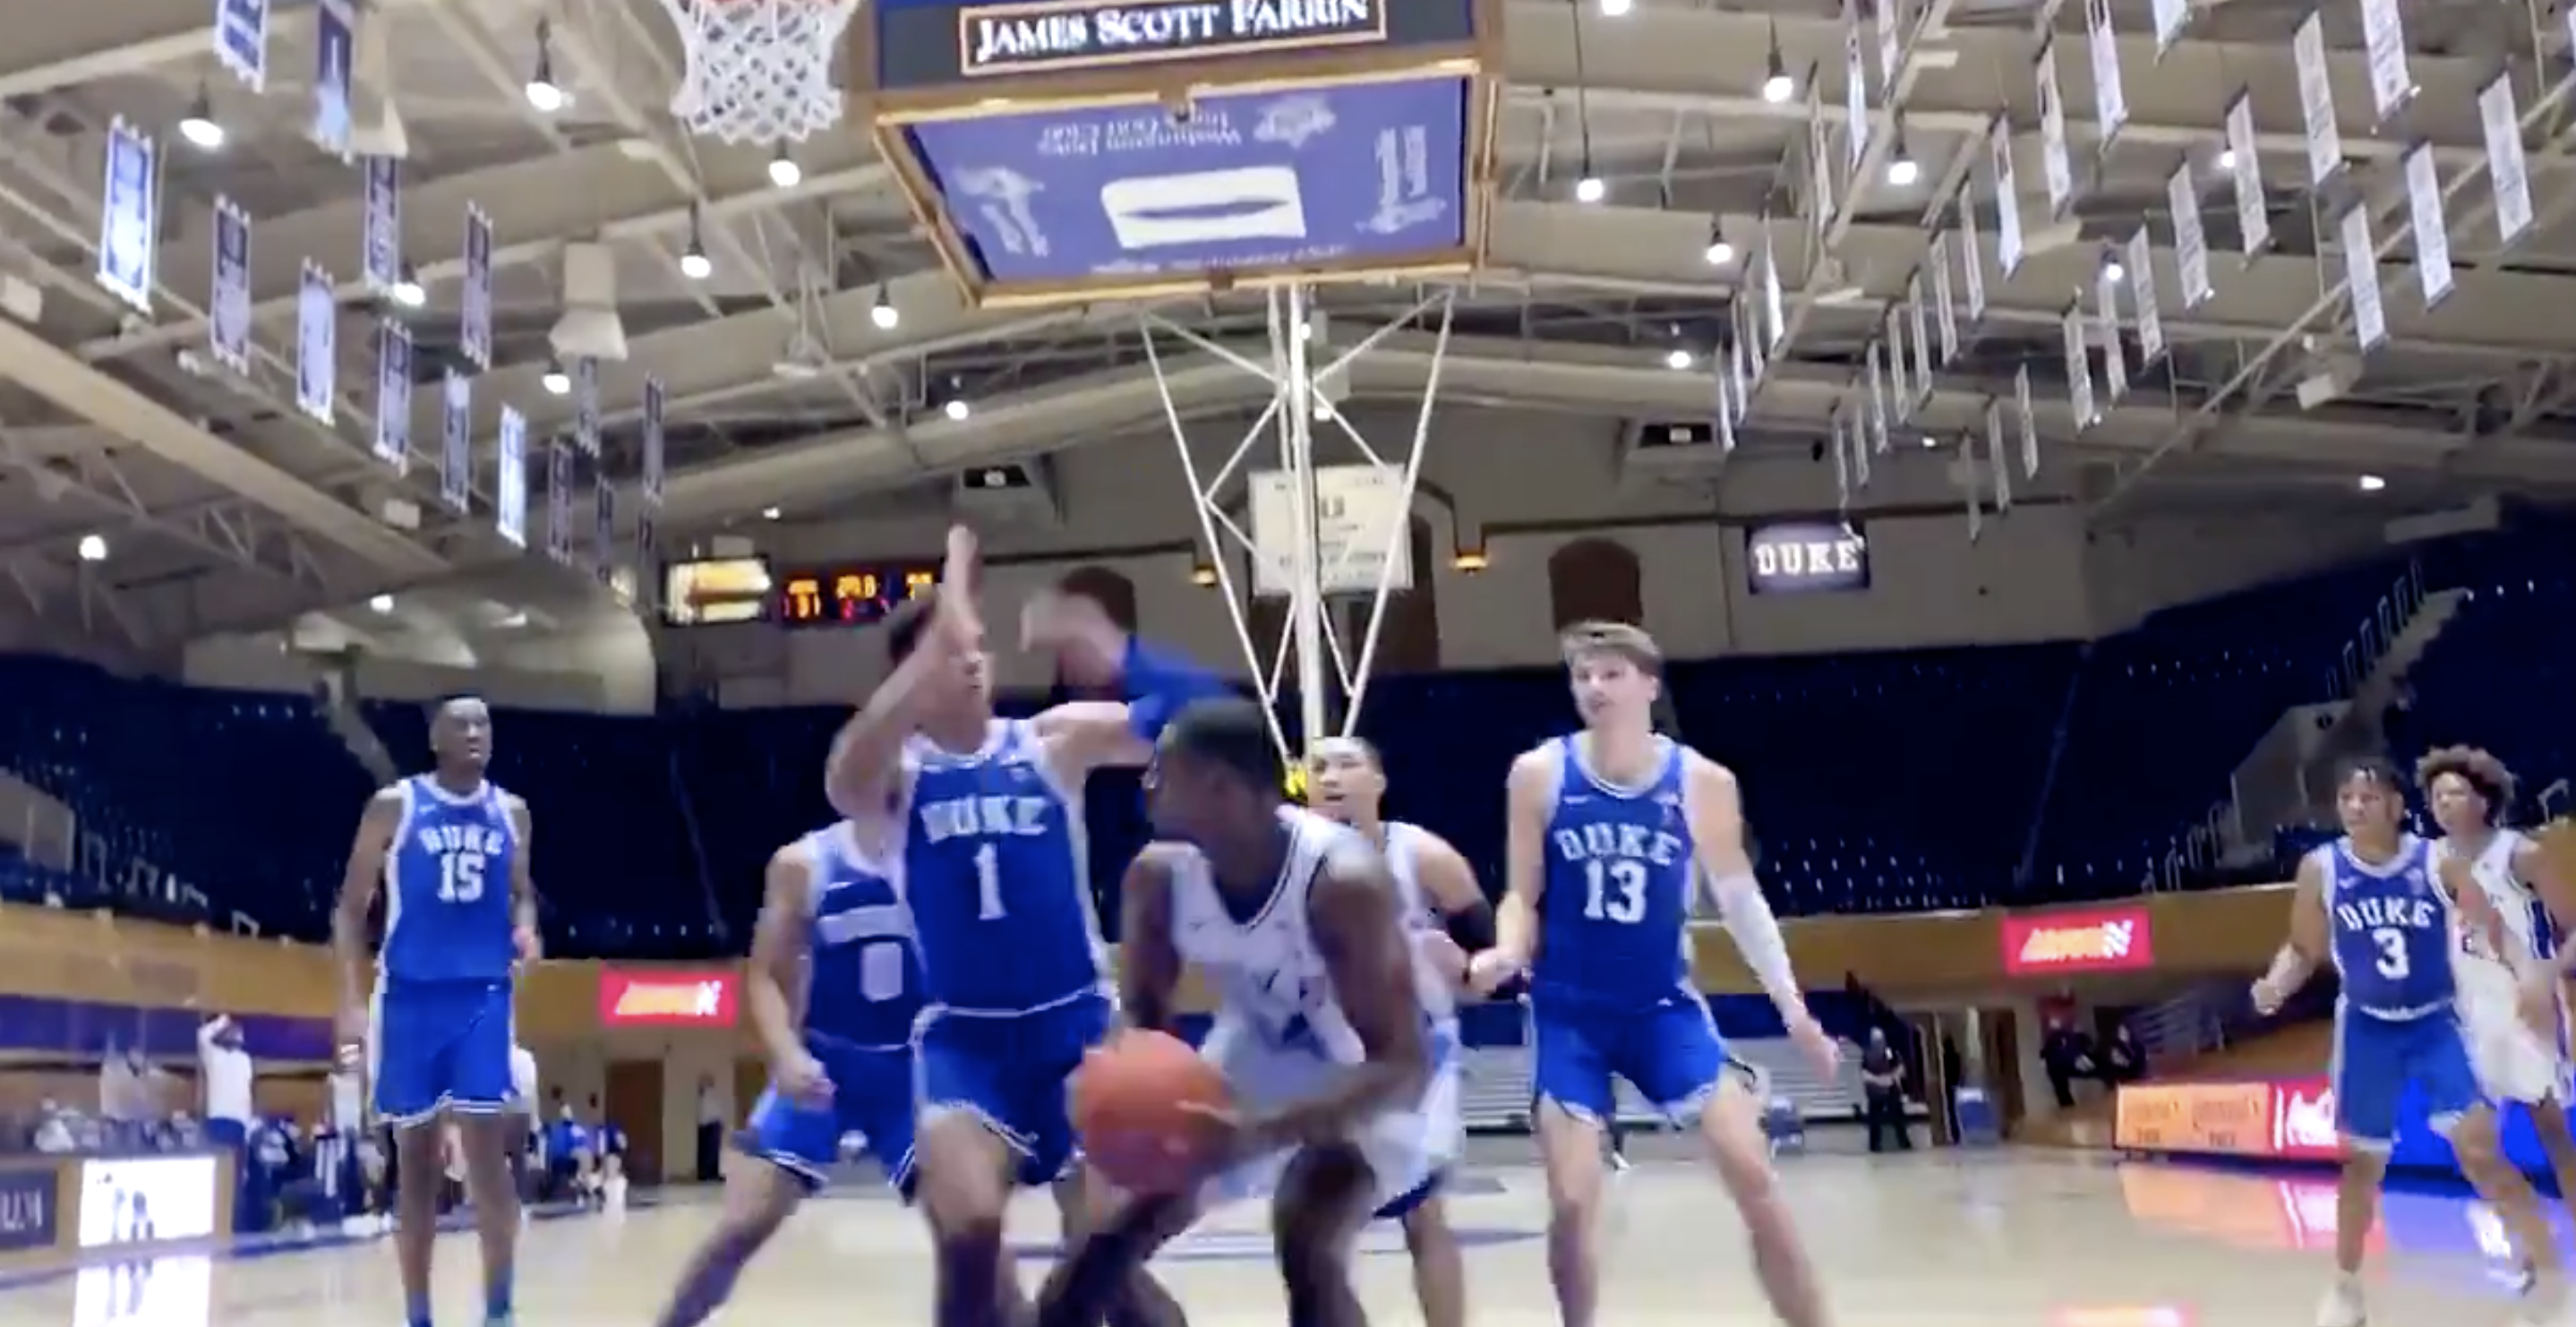 Highlights of Duke Basketball's second team scrimmages of the 2020-21 season